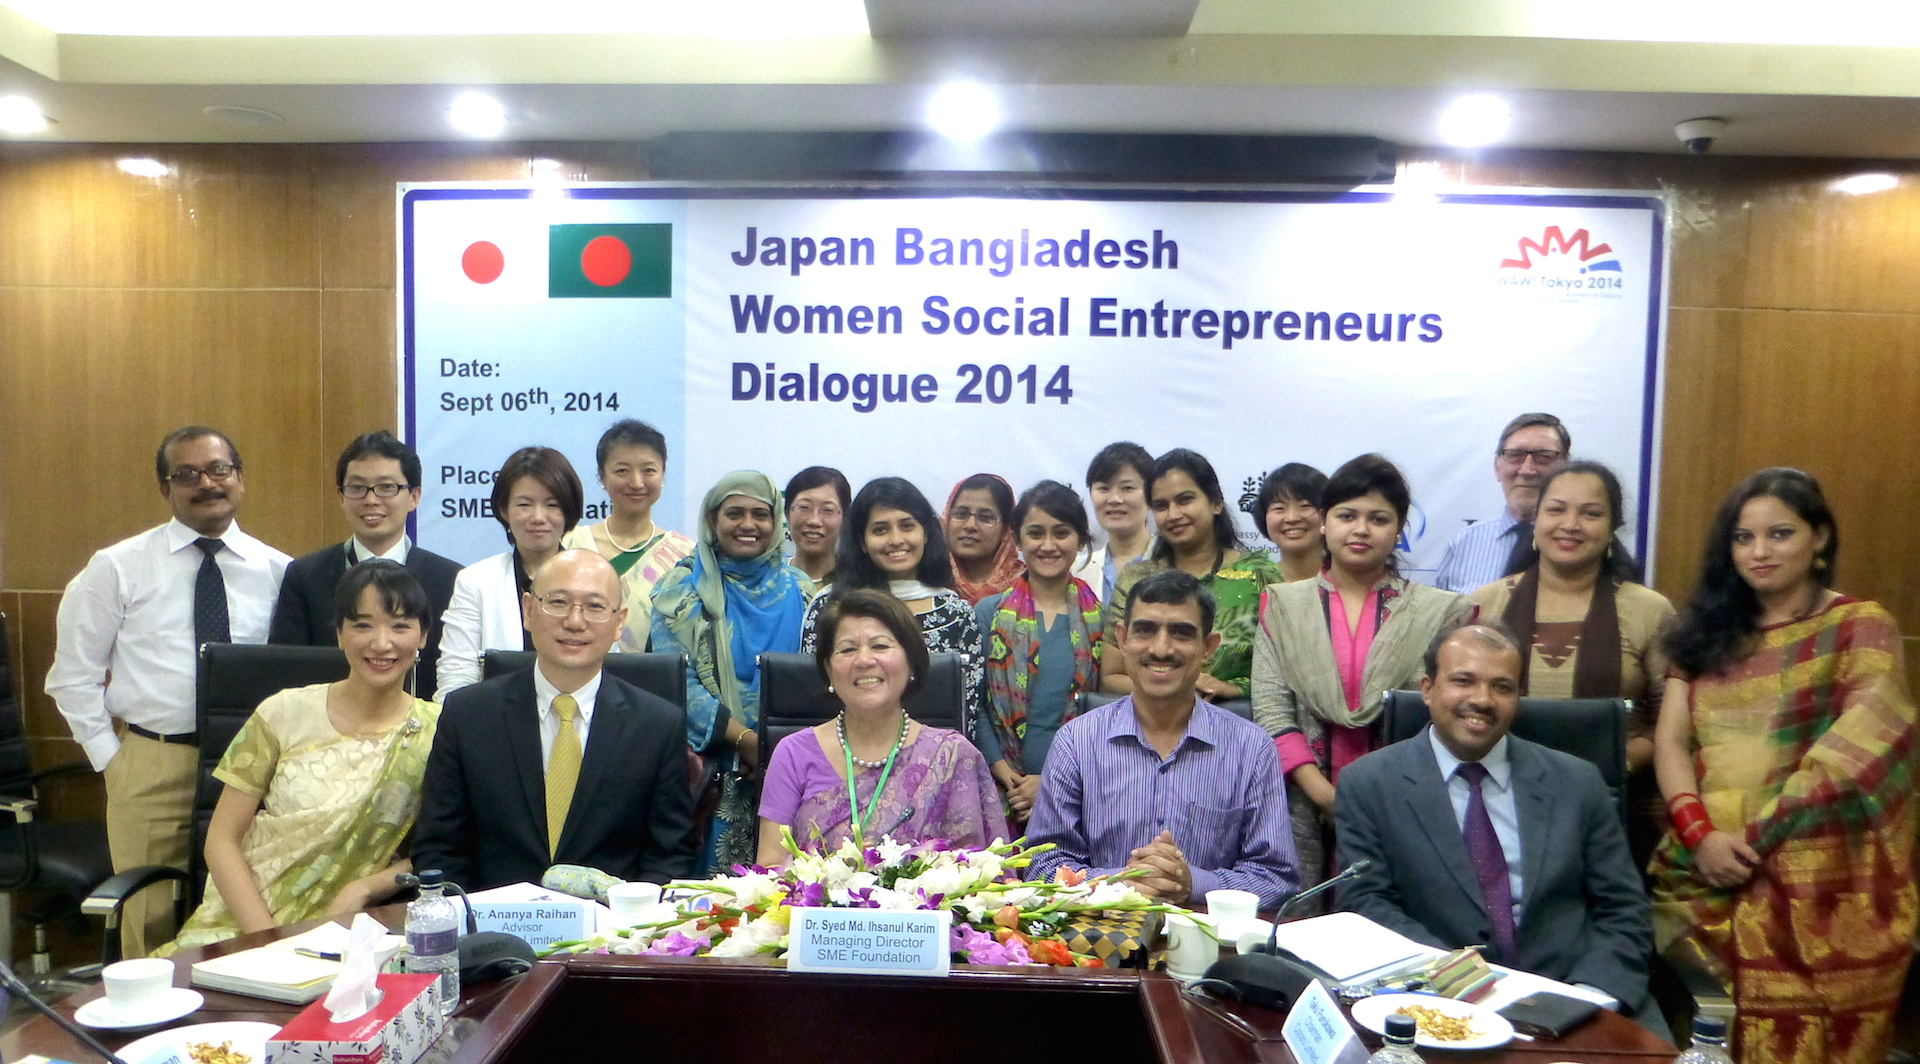 women entrepreneurship in case of bangladesh Women entrepreneurship has been playing a pivotal role in terms of economic   in bangladesh women entrepreneur have come a long way in  programme: a  case study from bangladesh, journal social science,5(3), pp.